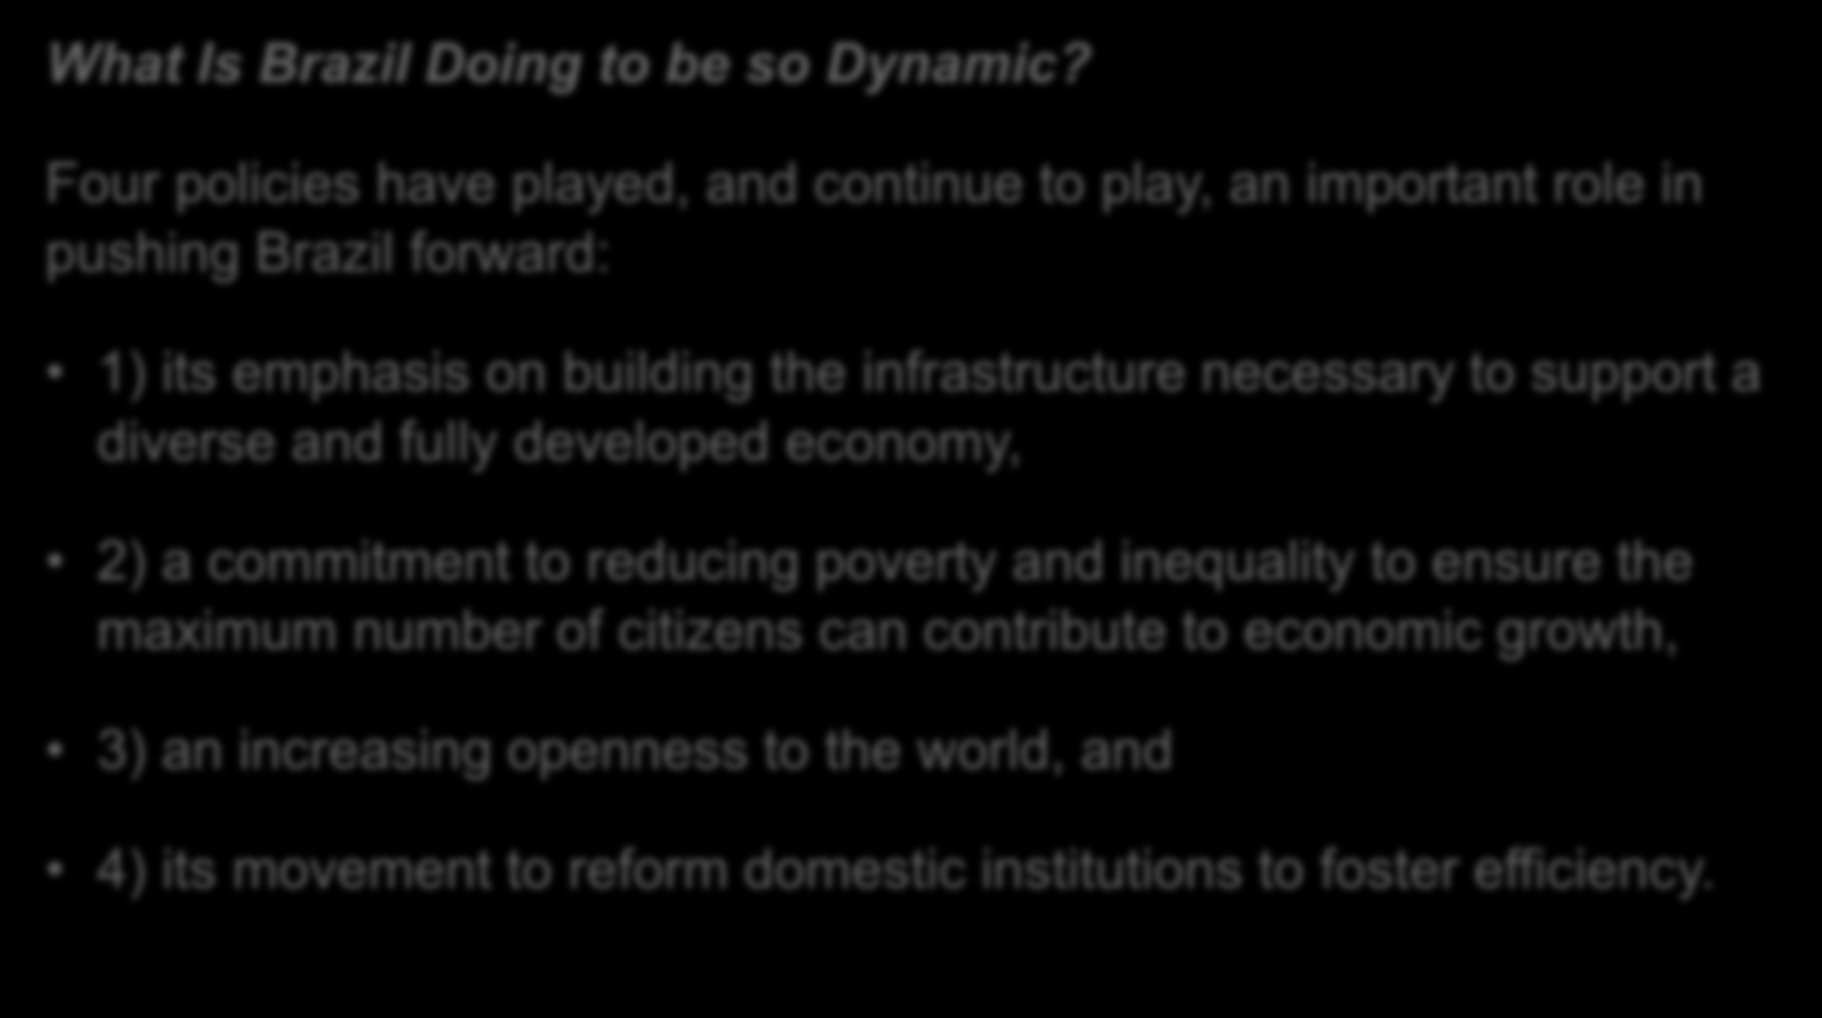 Introduction to Brazil What Is Brazil Doing to be so Dynamic?